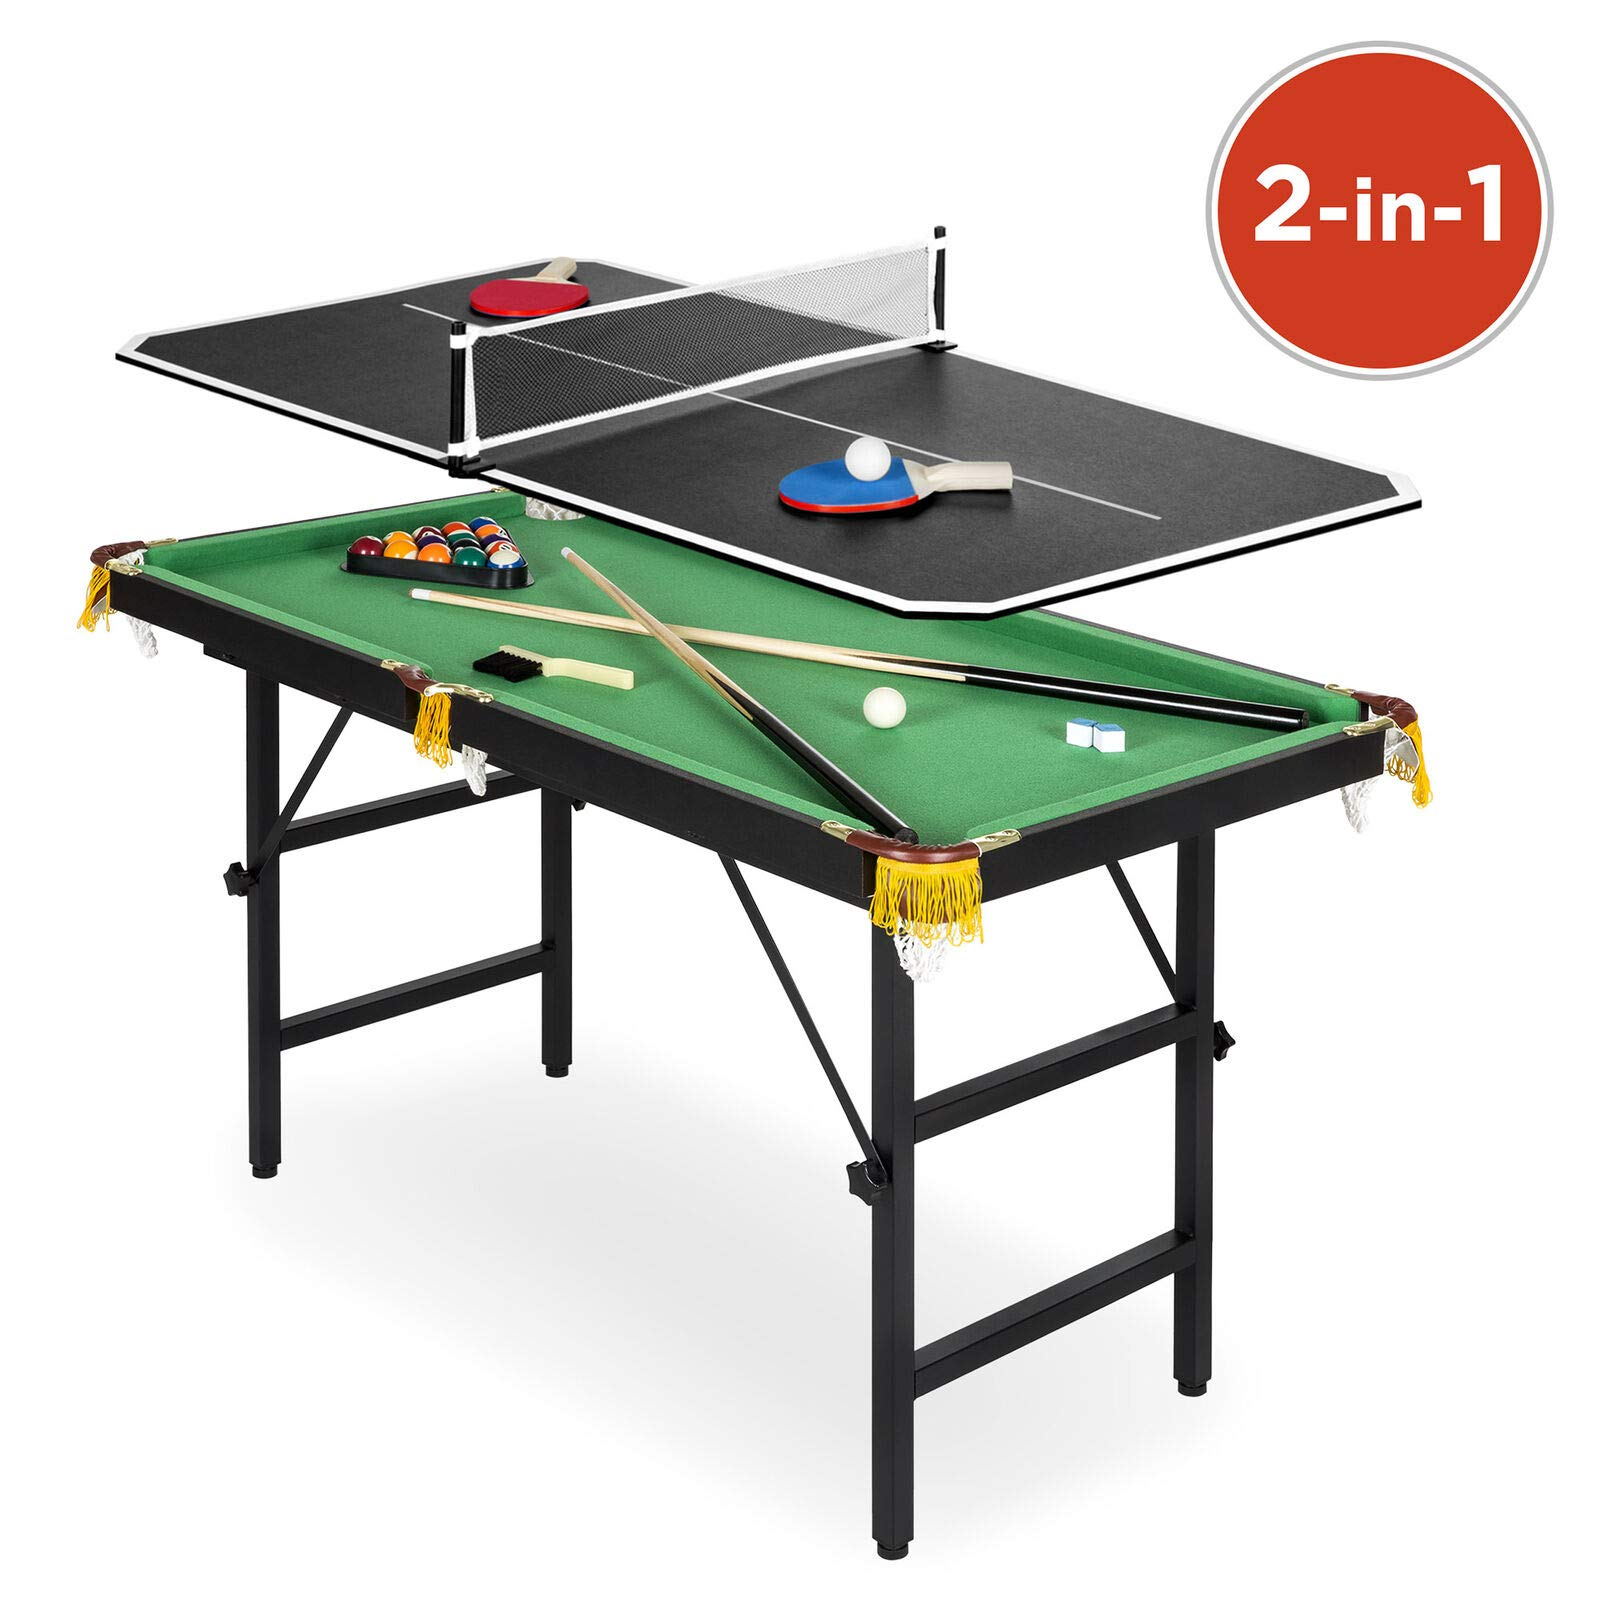 2-in-1 Arcade Game Combination Table Set Surface for Table Tennis and Billiards Pool Combo with Foldable Legs Perfect for Parties and Family Gatherings Ideal for Kids Children and Adult Alike by Precioso